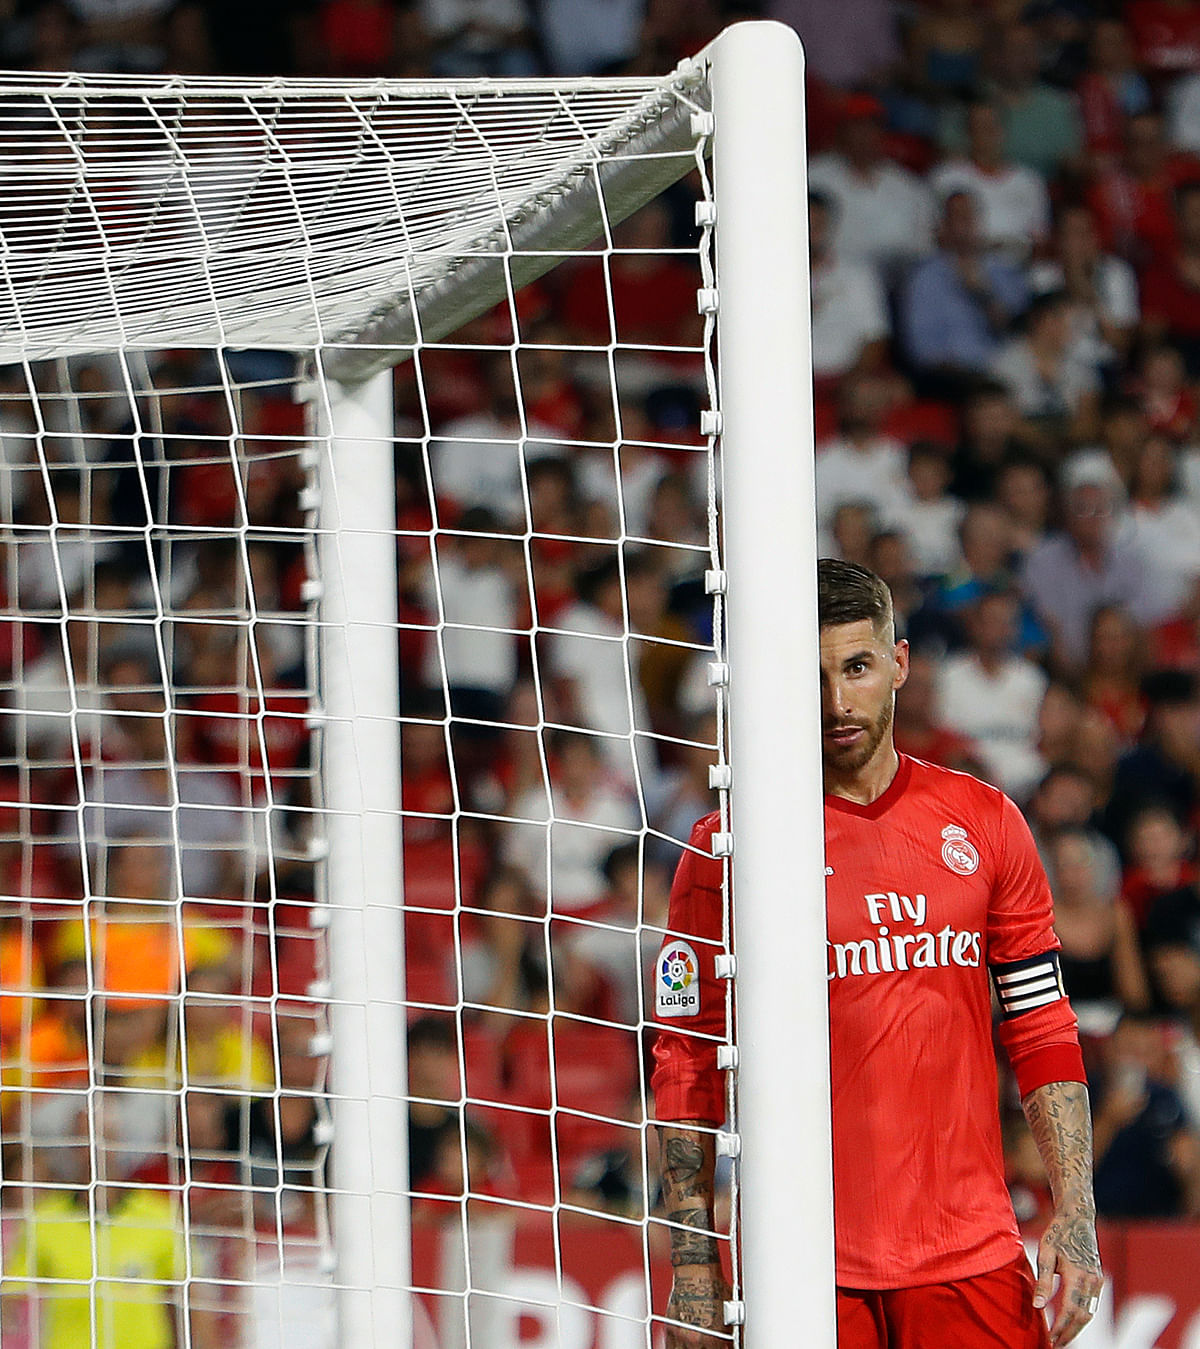 Real Madrid's Sergio Ramos, reacts during La Liga soccer match between Sevilla and Real Madrid at the Sanchez Pizjuan stadium, in Seville, Spain on Wednesday, Sept.. 26, 2018. Sevilla won 3-0.